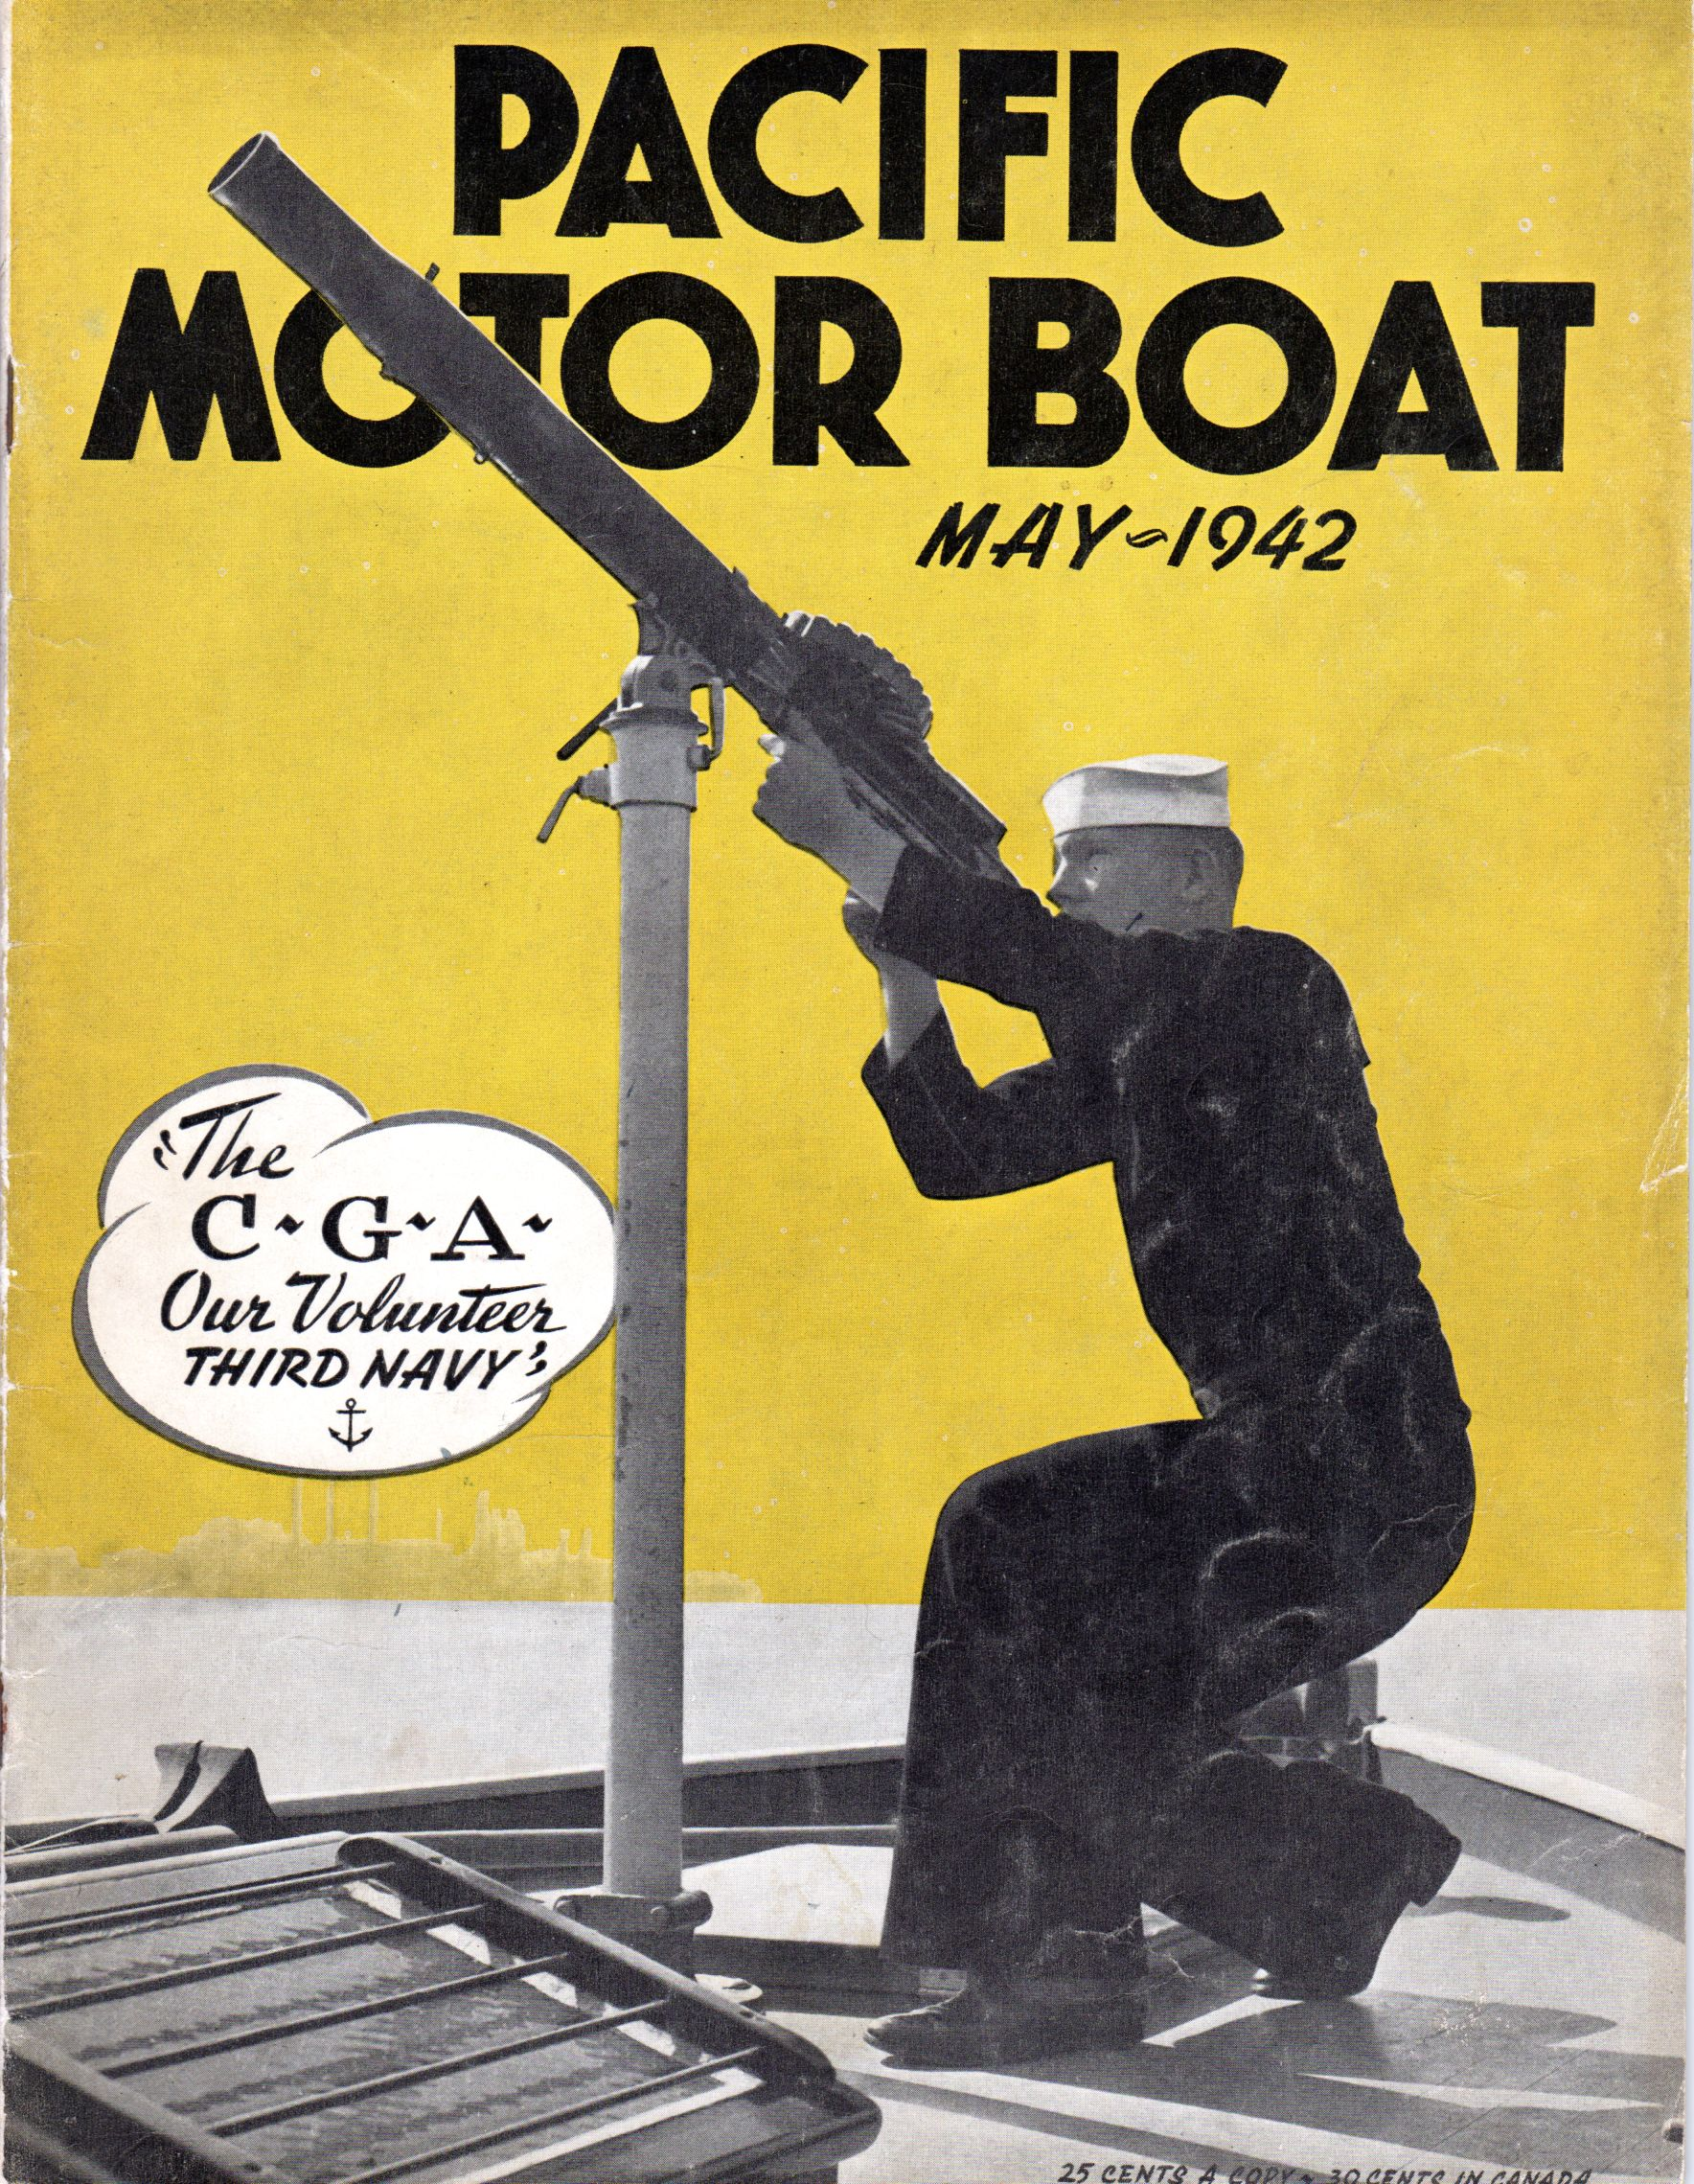 Pacific Motor Boat Magazine Wartime Cover